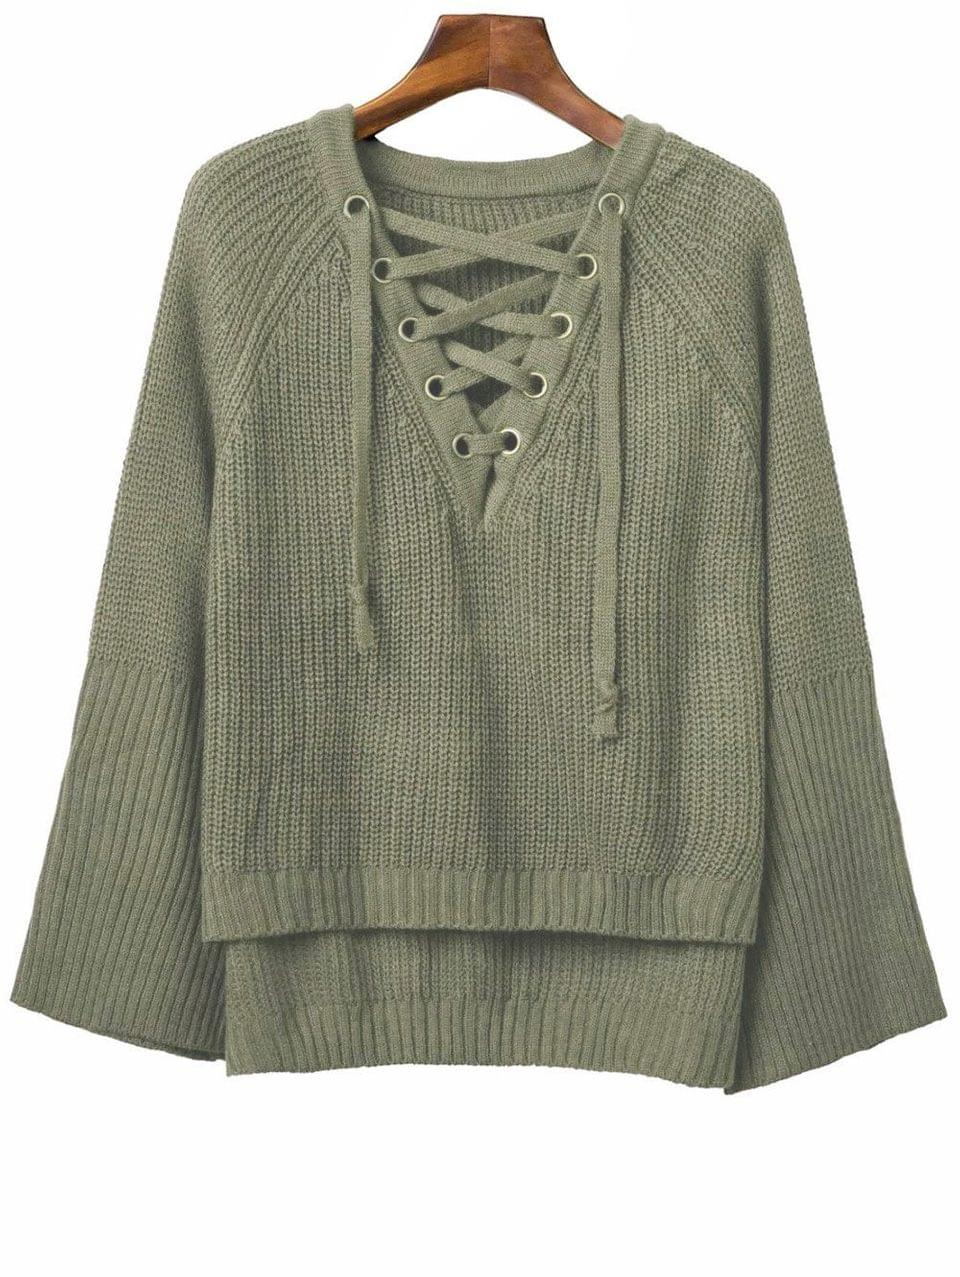 Women's Lace Up V Neck Long Sleeve Sweater - Army Green